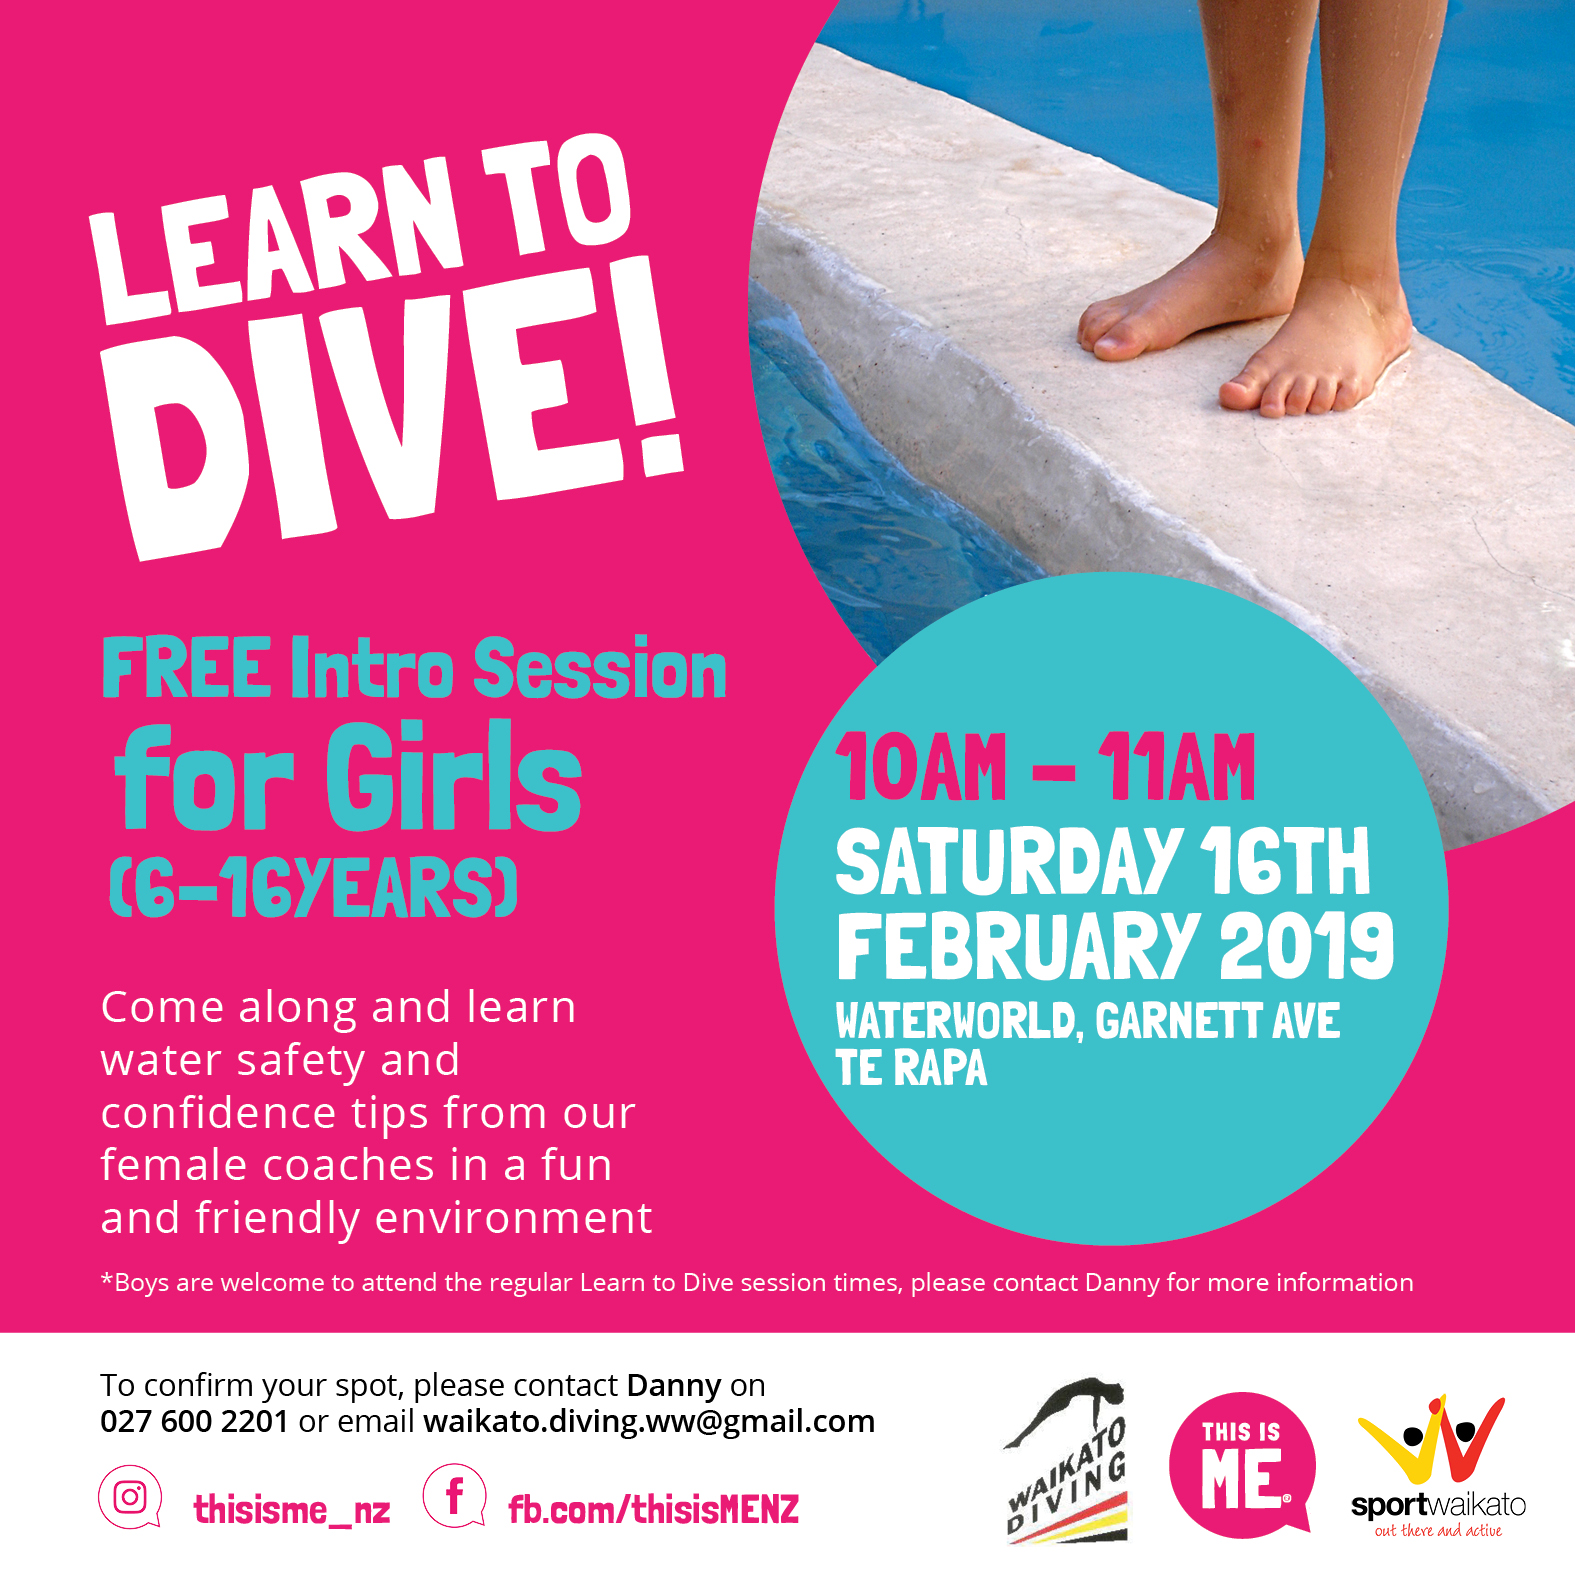 Intro Learn to Dive Session for Girls (6-16years) Feature Image